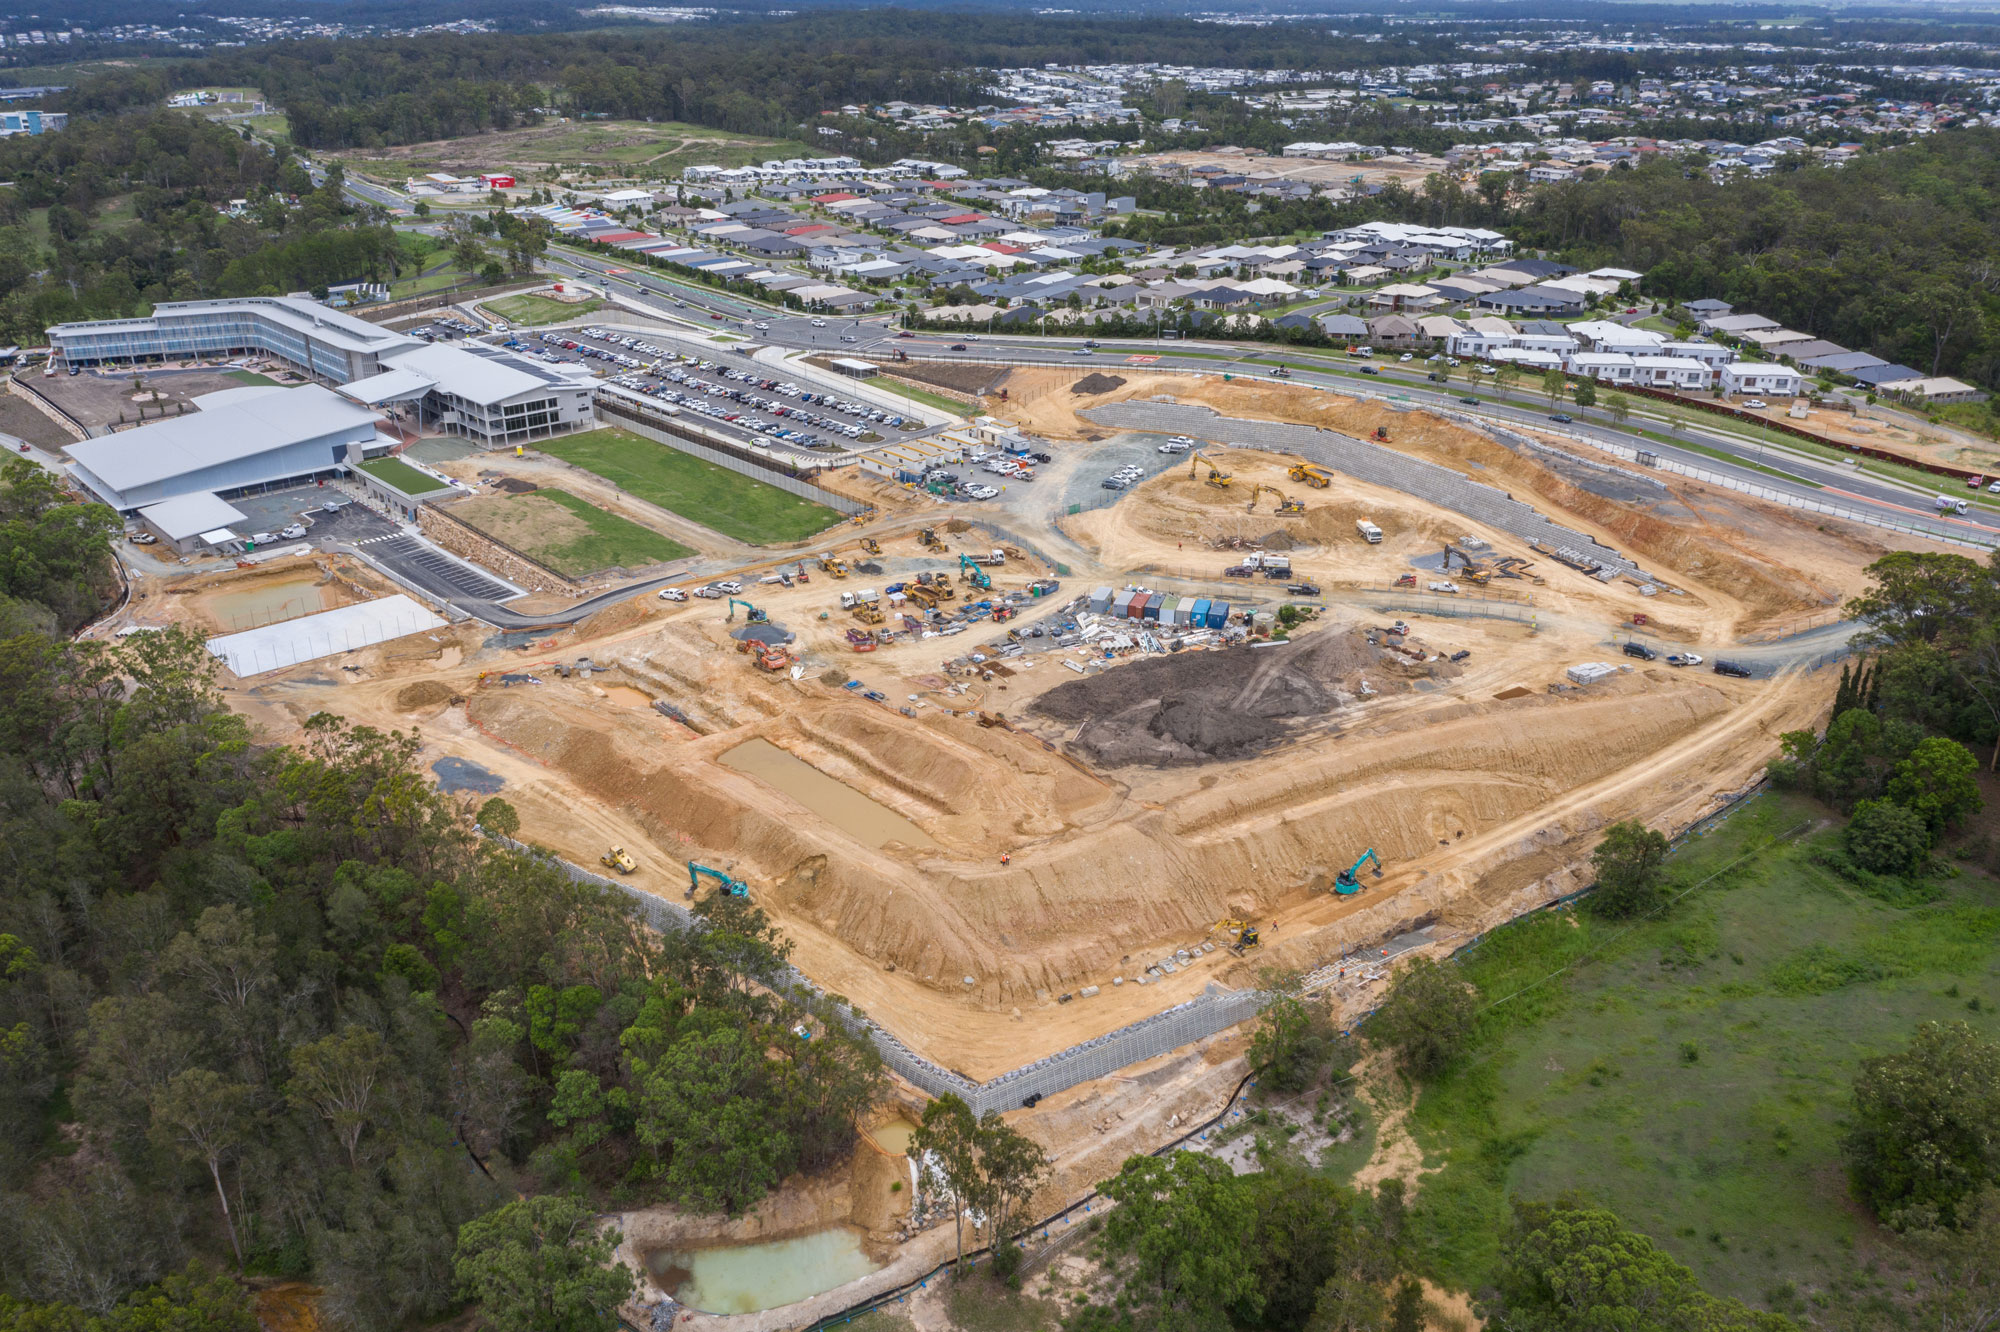 Drone photography of the entire construction site